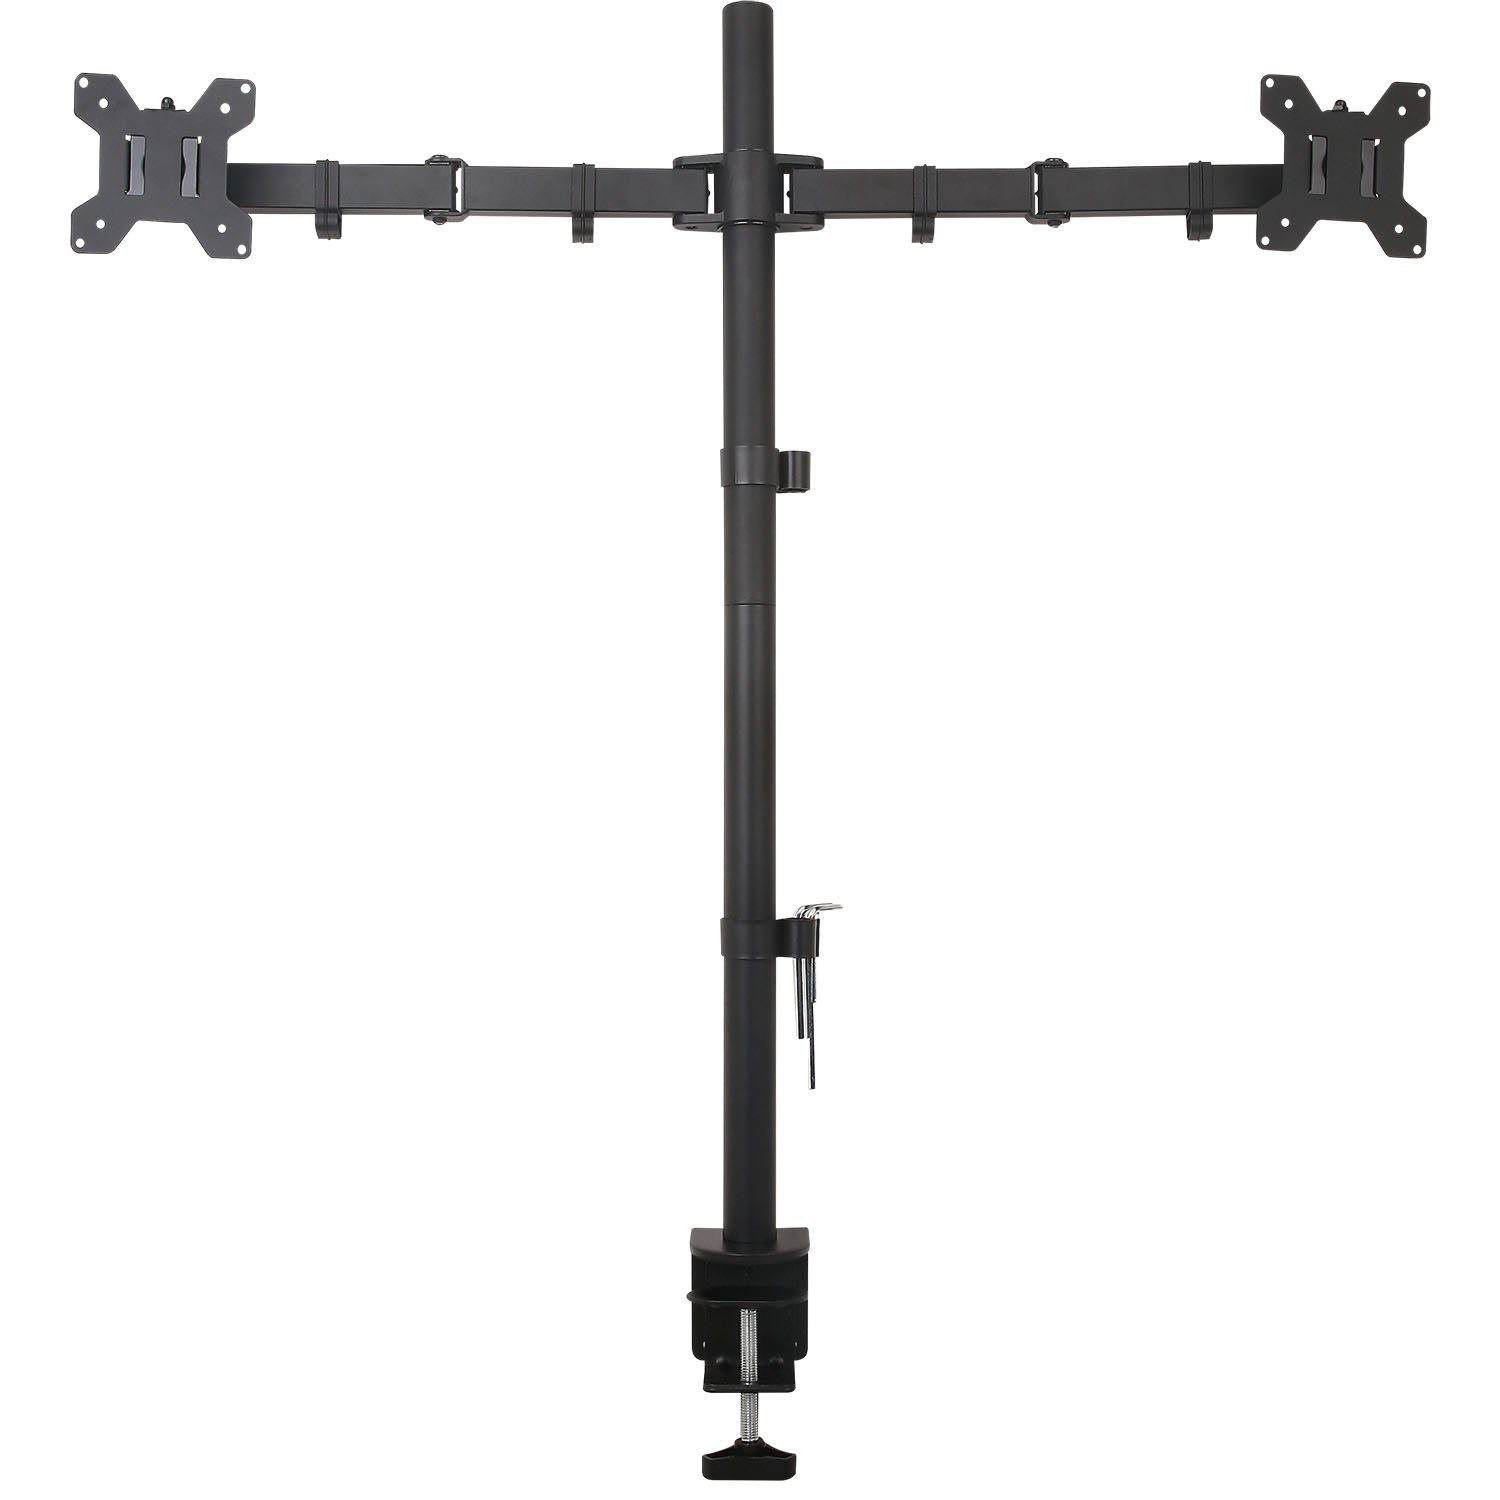 WALI Extra Tall Dual LCD Monitor Fully Adjustable Desk Mount Fits 2 Screens up to 27 inch, 22 lbs. Weight Capacity per Arm (M002XL), Black